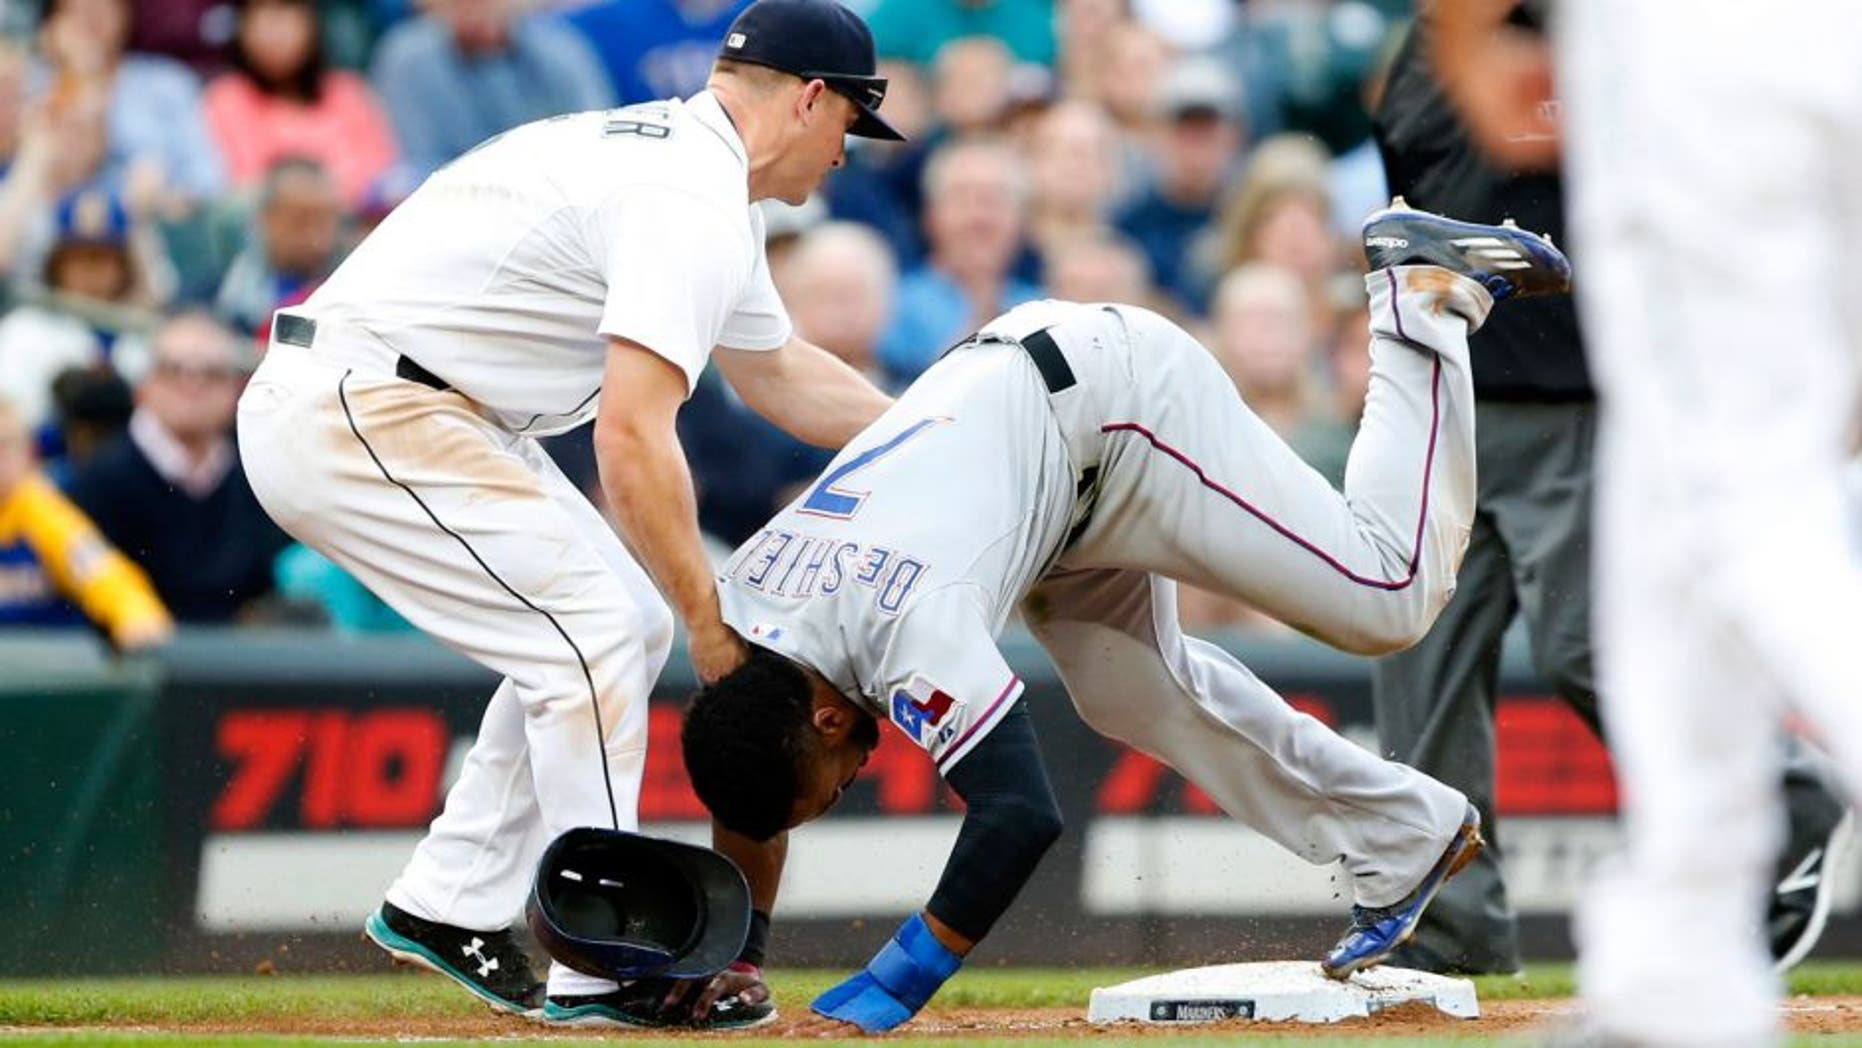 Sep 7, 2015; Seattle, WA, USA; Texas Rangers center fielder Delino DeShields (7) is out at third base after getting tagged by Seattle Mariners third baseman Kyle Seager (15) during the seventh inning at Safeco Field. Mandatory Credit: Jennifer Buchanan-USA TODAY Sports